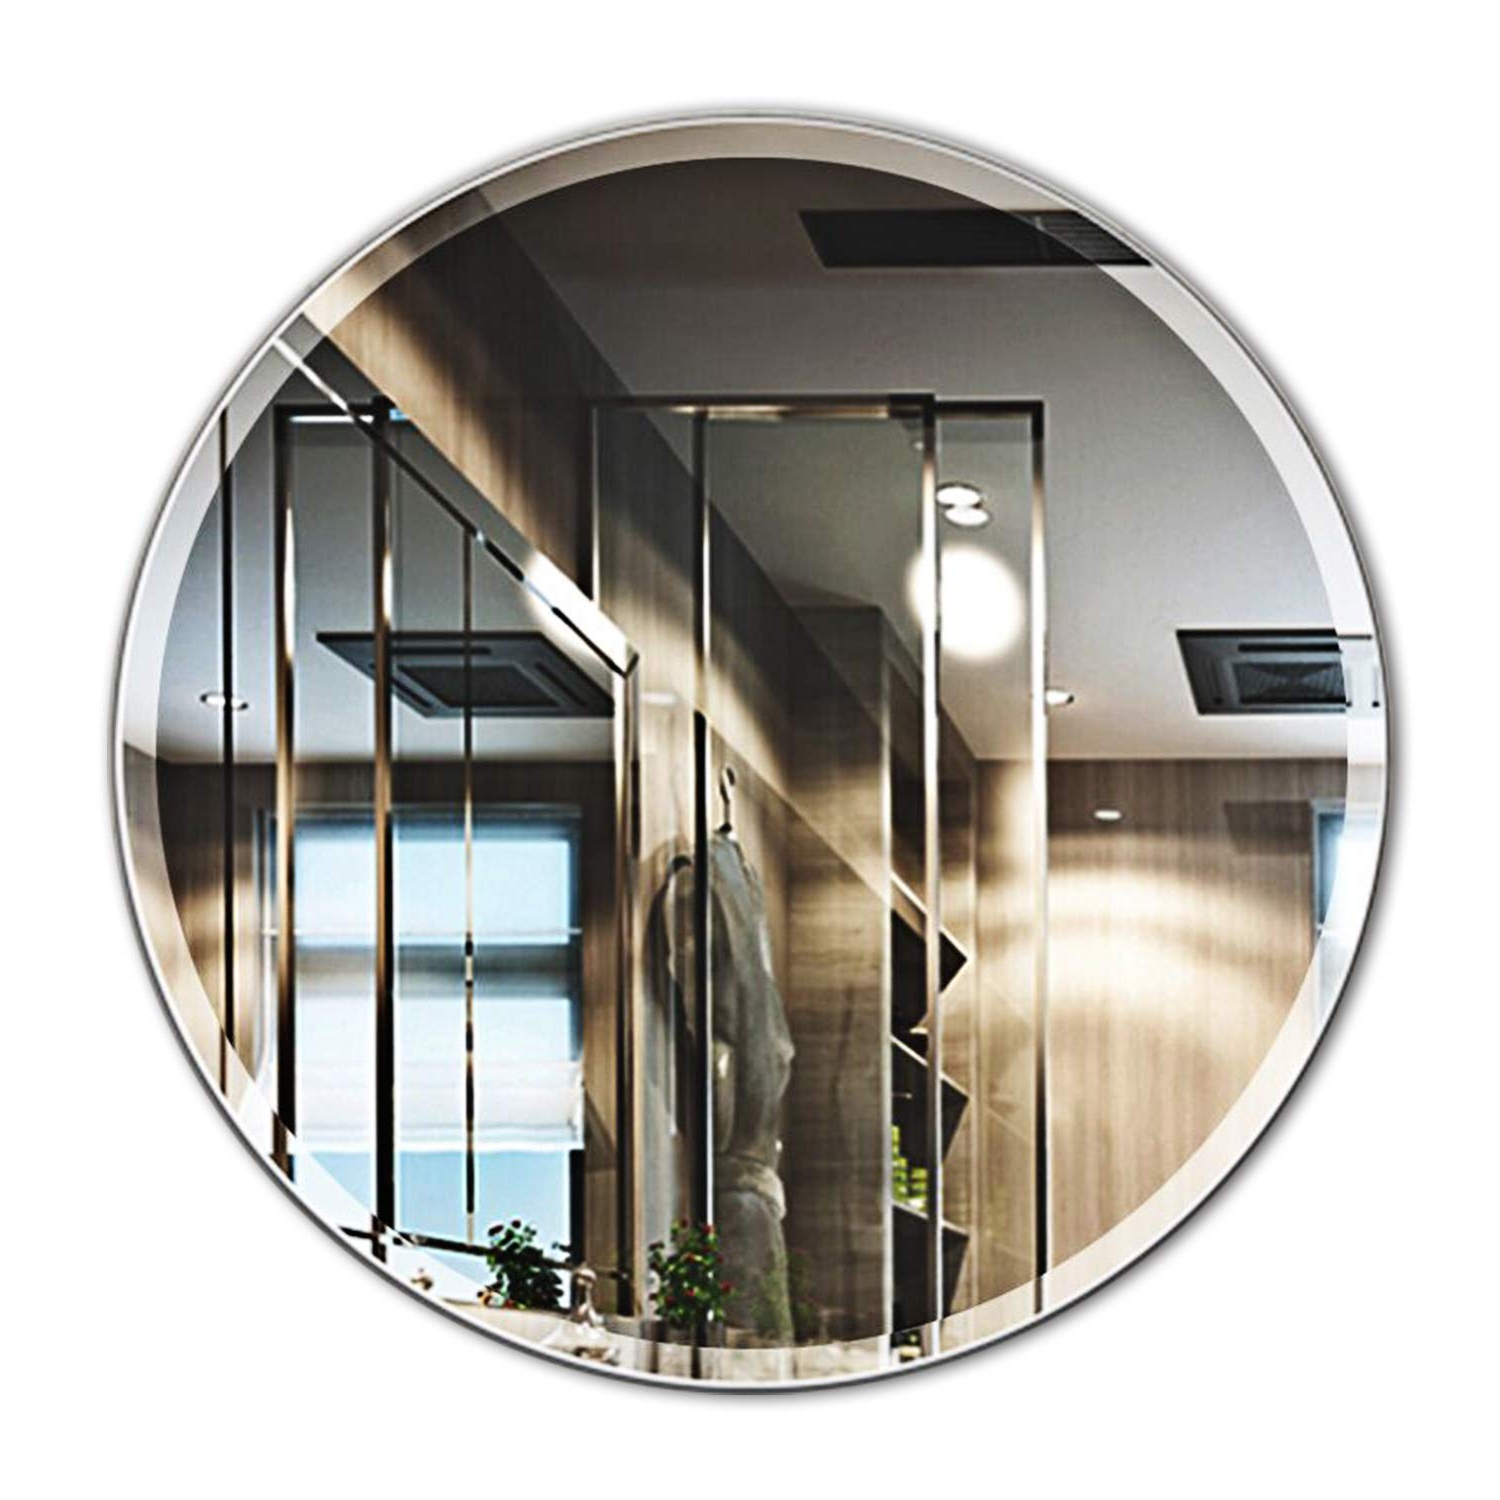 Most Recently Released Mirror Trend 28 Inches Round Frameless Mirror Large Beveled Wall Mirror Solid Core Wood Backing Wall Mirror For Bathroom, Vanity, Living Room, Bedroom In Large Frameless Wall Mirrors (View 18 of 20)